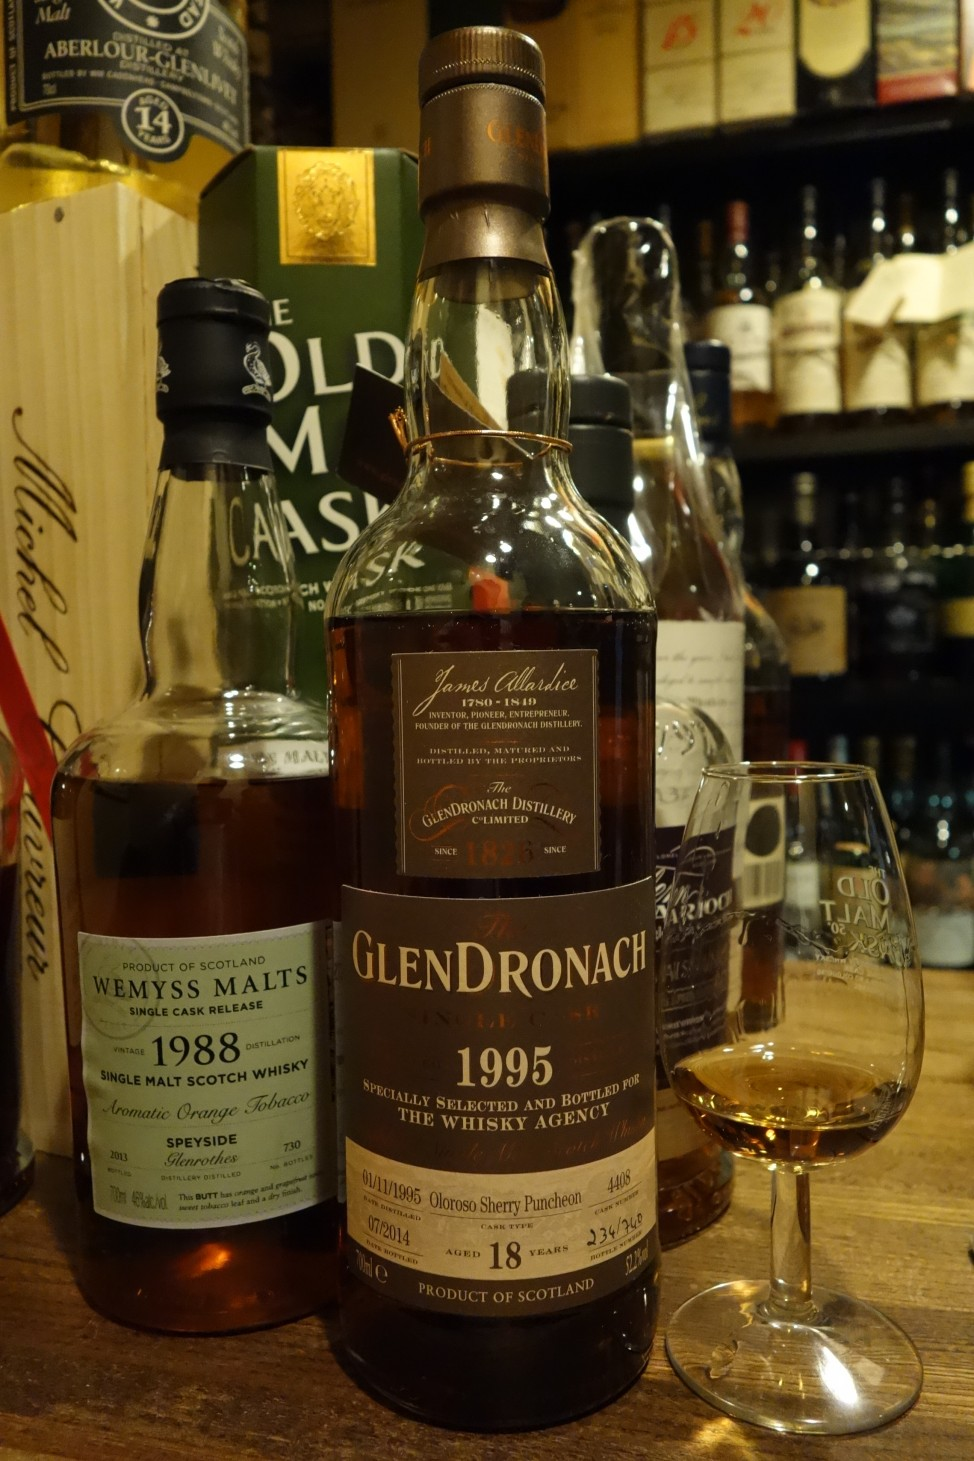 グレンドロナック GLENDRONACH 1995-2014 18yo OB for THE WHISKY AGENCY #4408